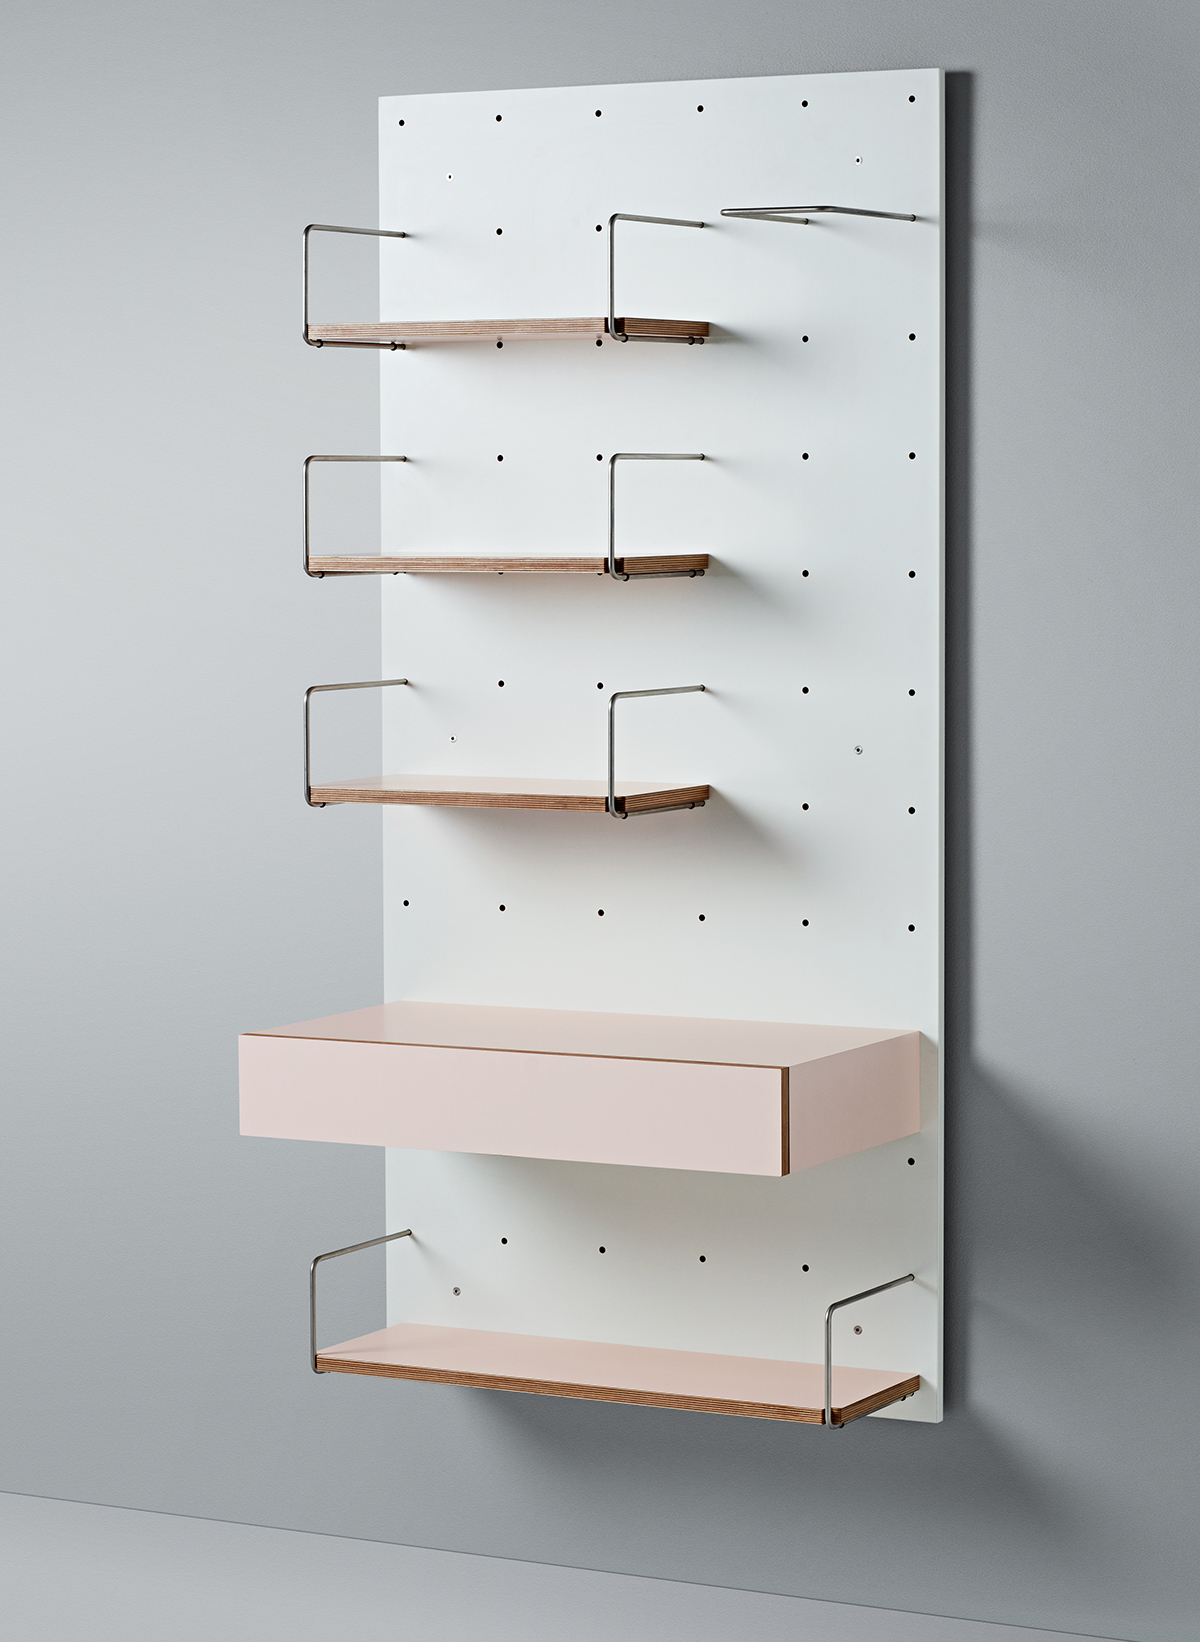 Adore_Home_blog_Cantilever Interiors_Wanda Shelving System_Utility_Photography by Mike Baker & Styling by Heather Nette King_19.jpg